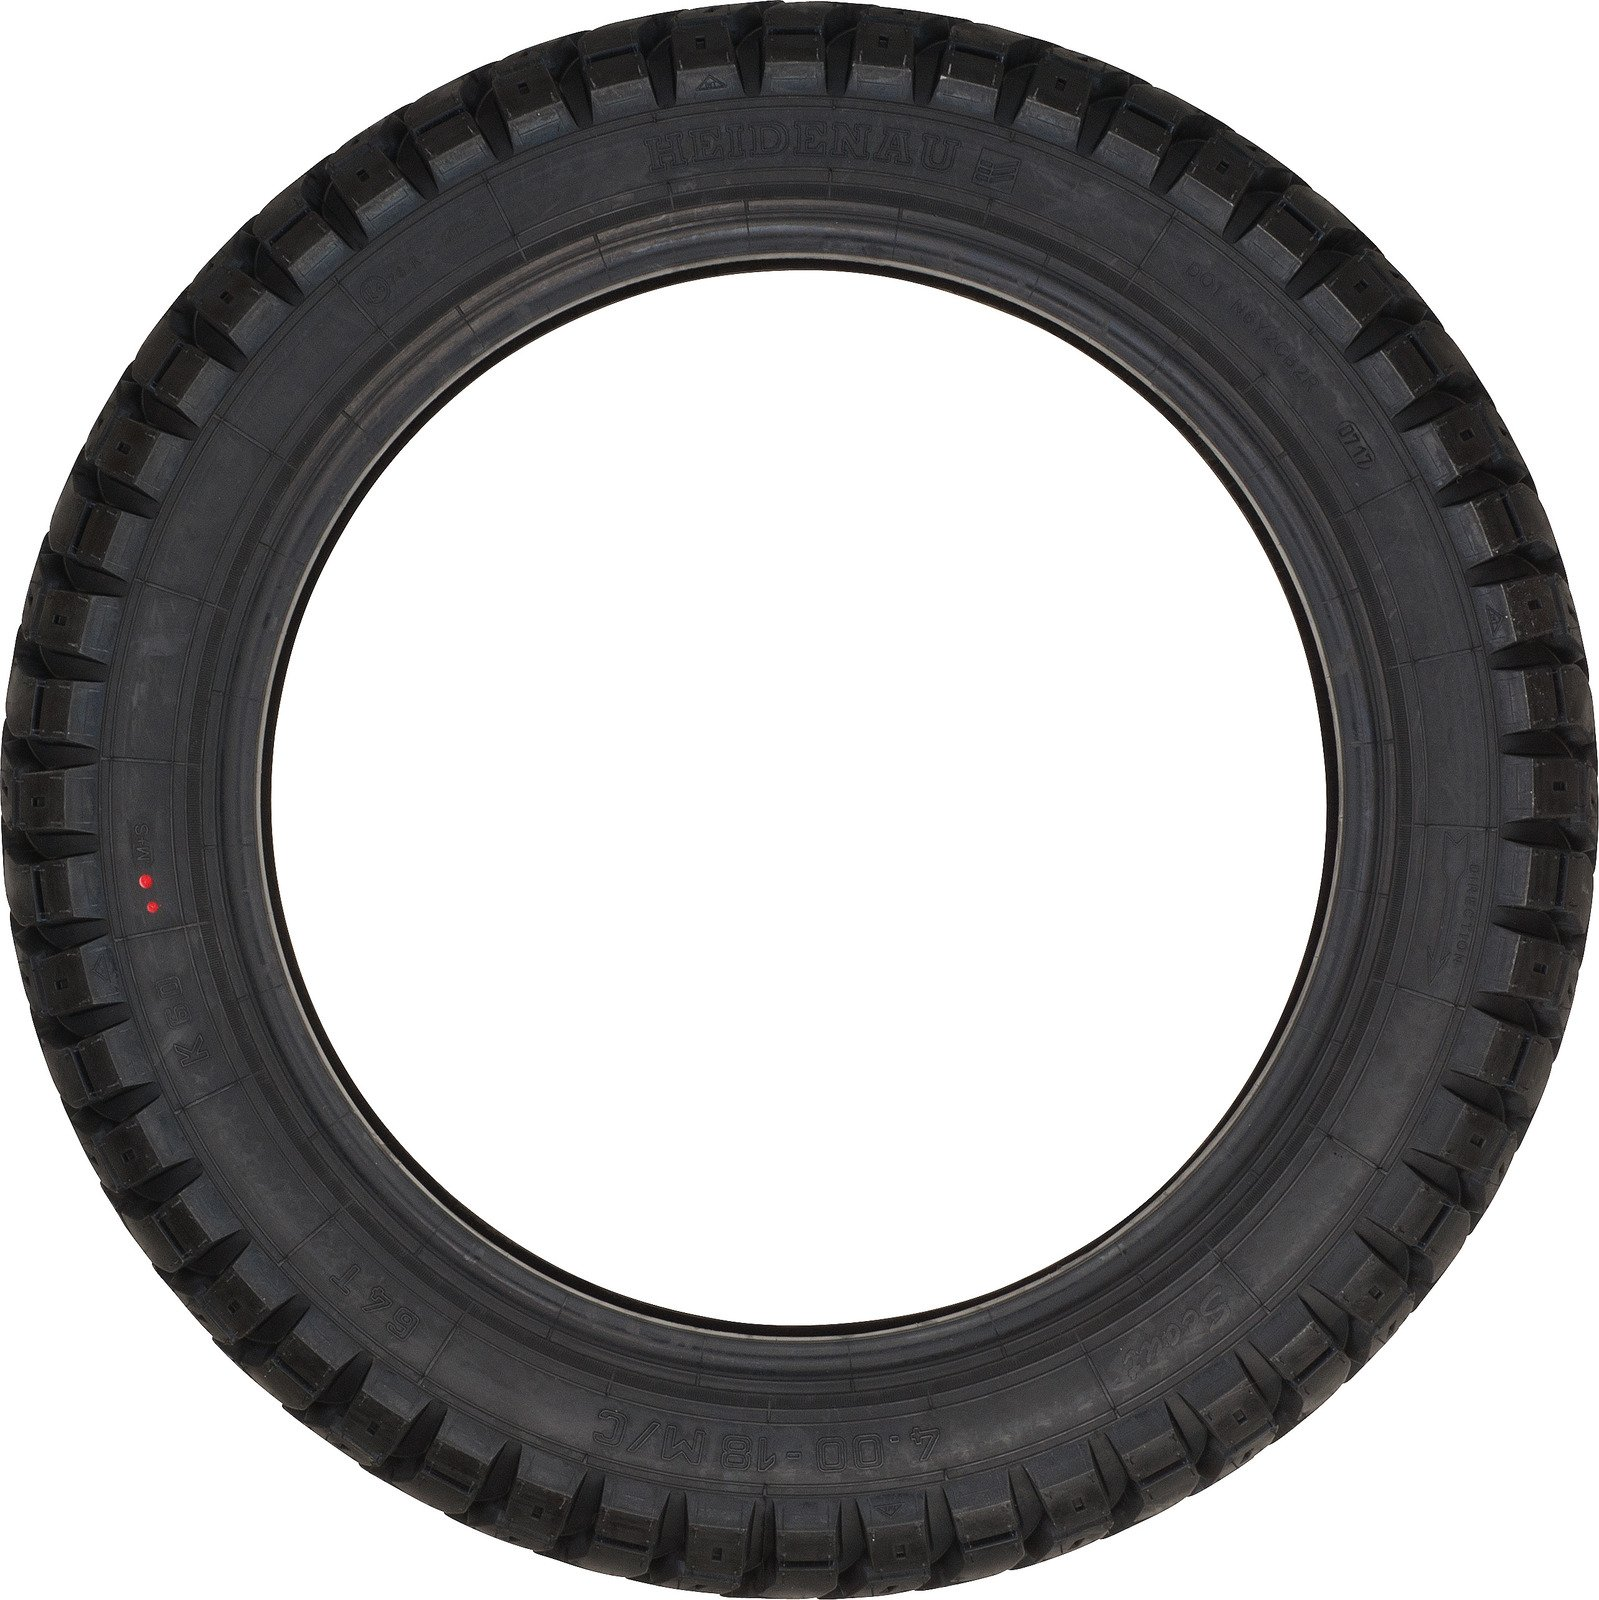 Heidenau K60 Enduro Rear Tire 4.00-18 61025